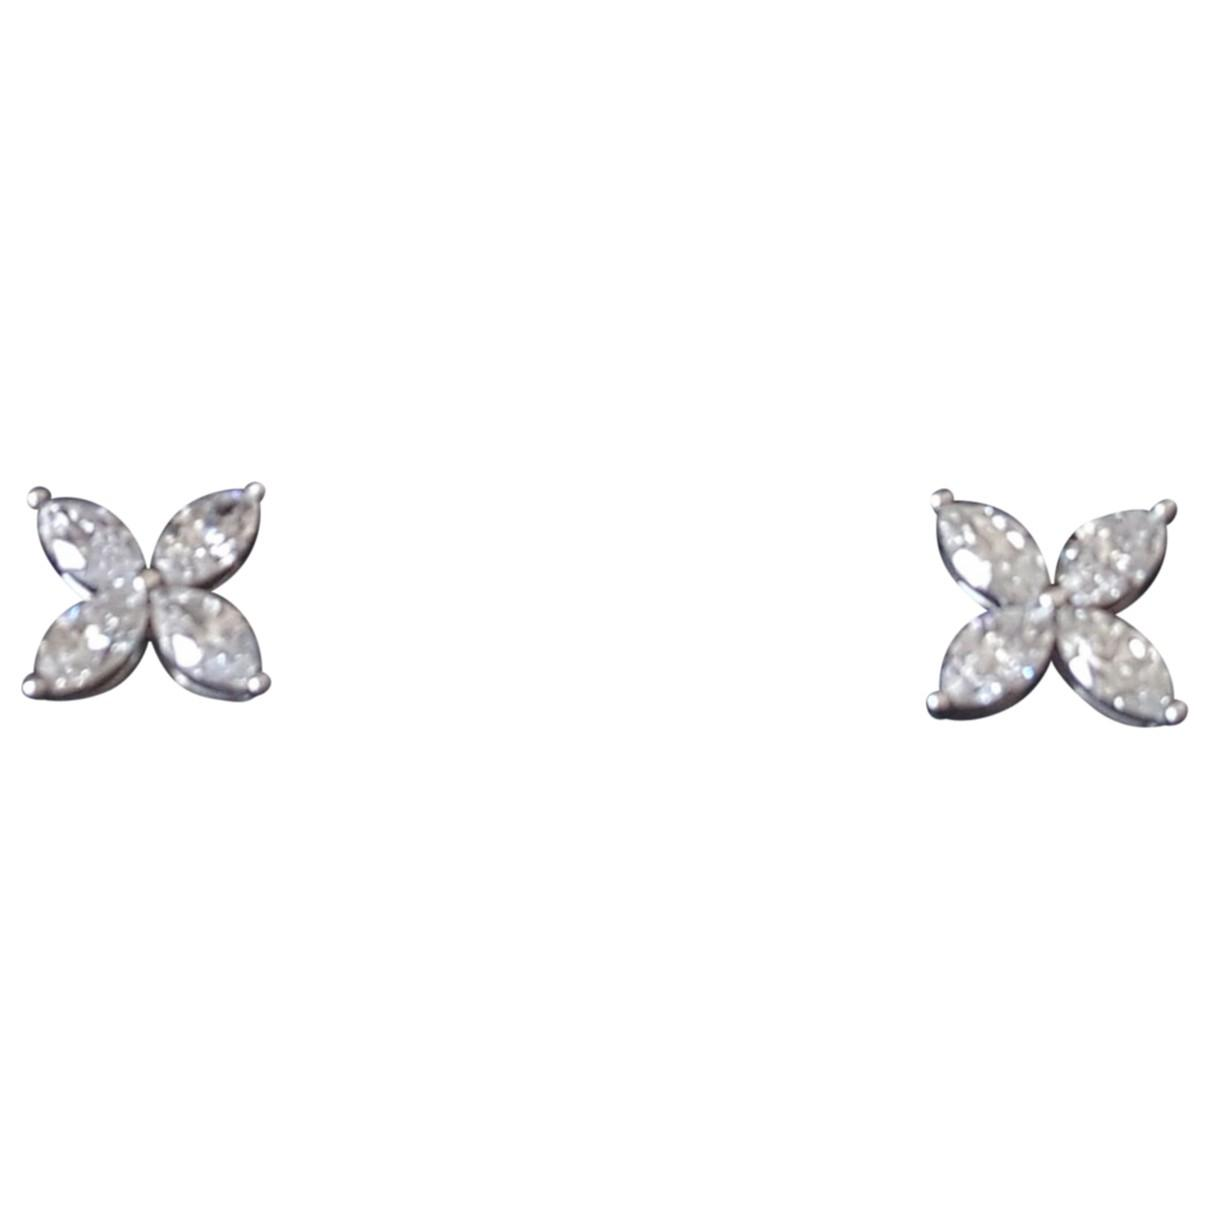 190551aed Lyst - Tiffany & Co. Pre-owned Victoria White Platinum Earrings in White